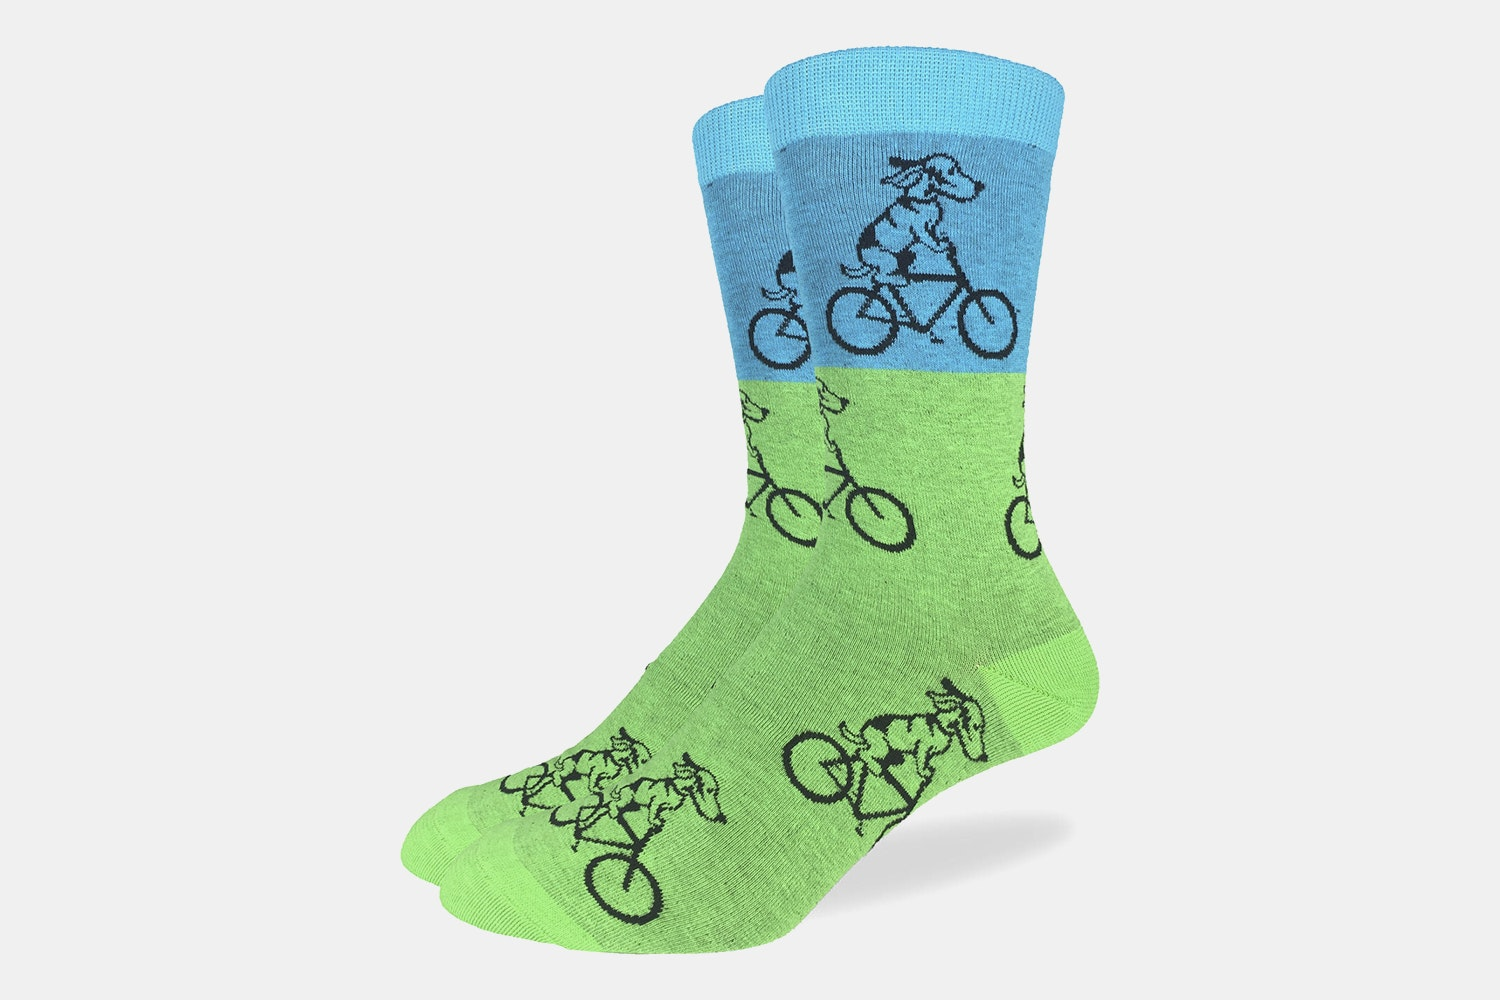 Green & Blue Dog ON Bike Crew Socks